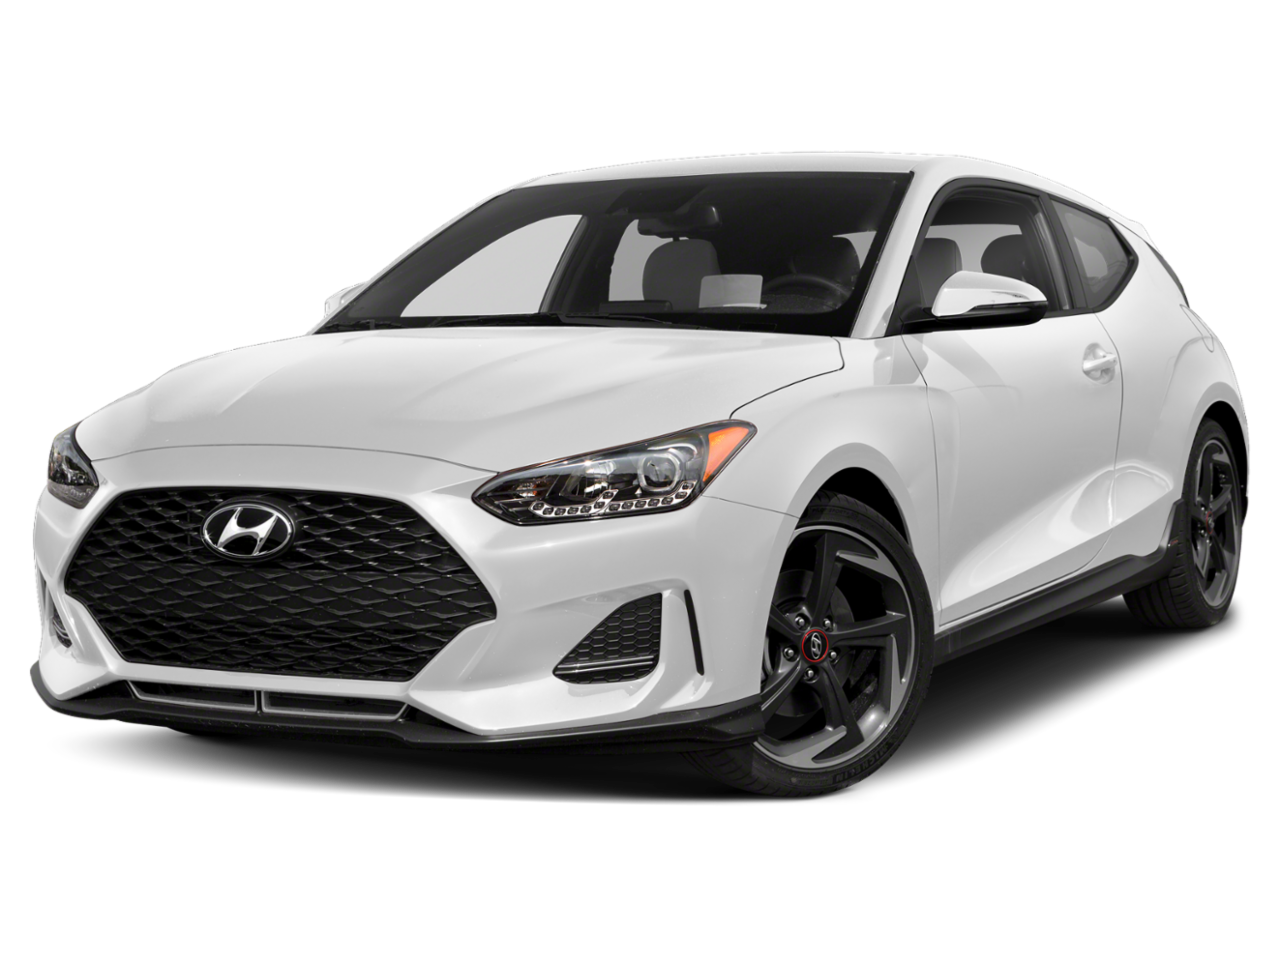 Hyundai 2020 Veloster Turbo Ultimate